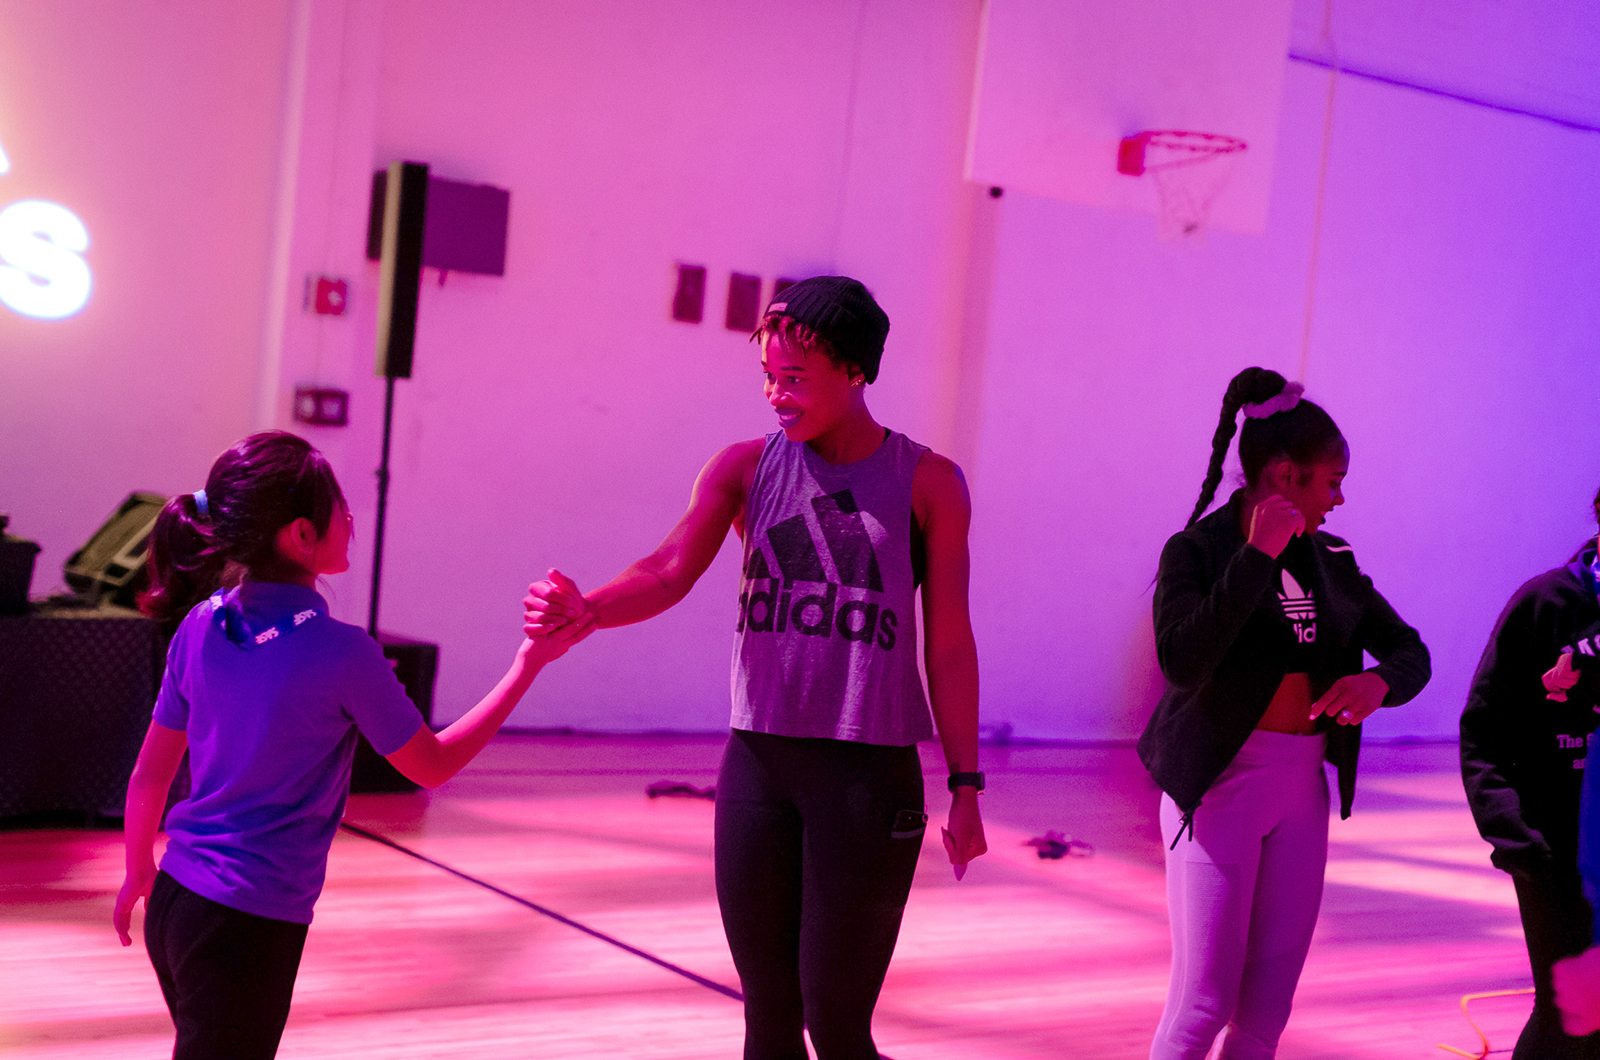 Girls shake hands at an event in a gym.